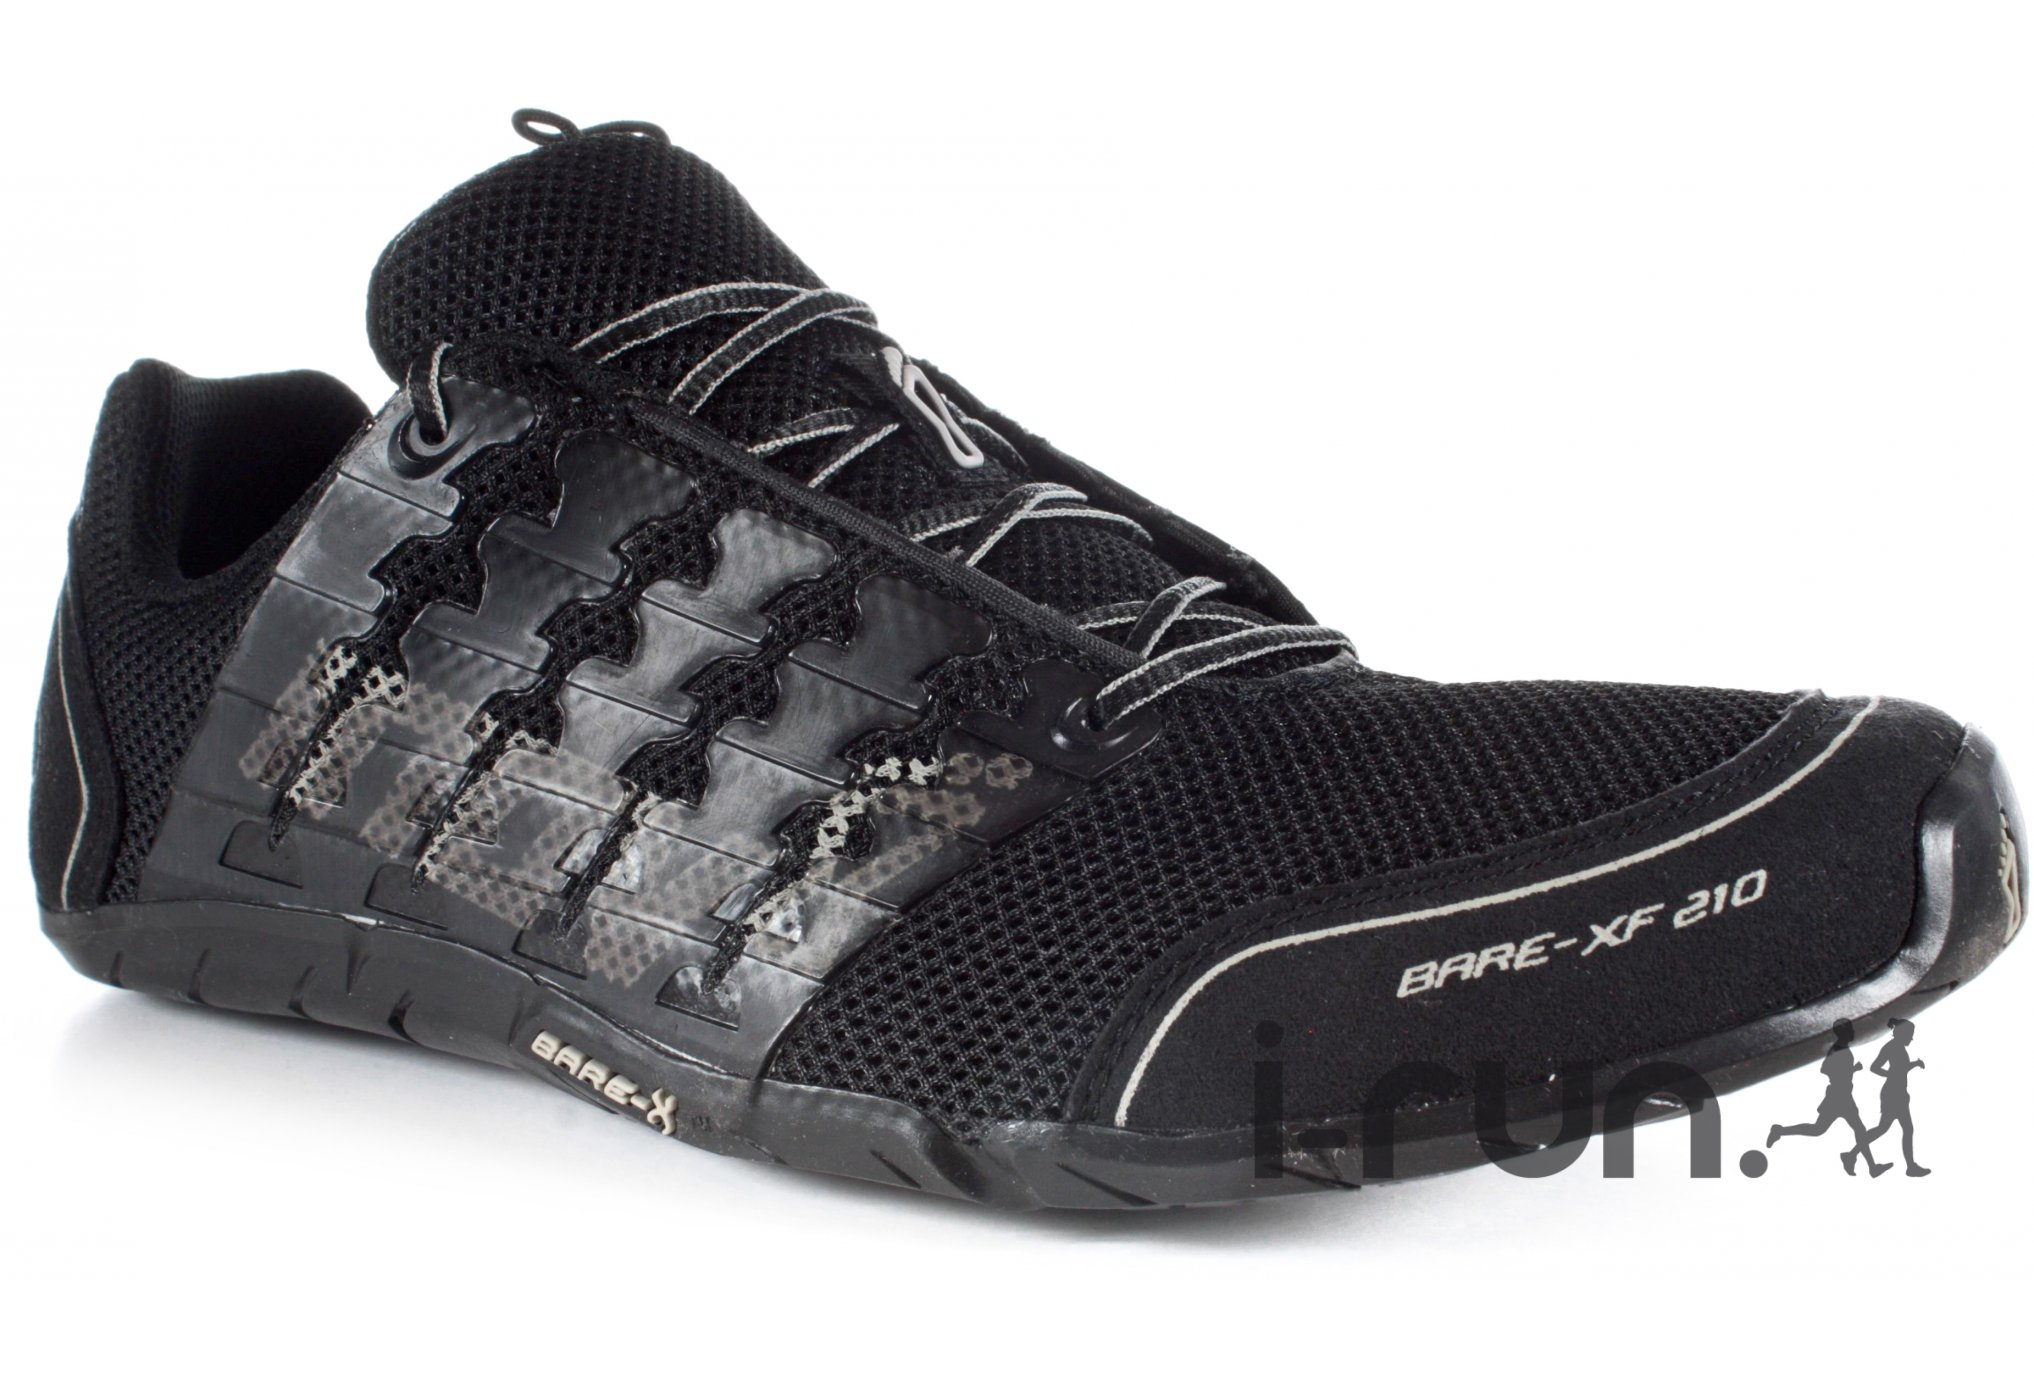 Inov-8 Bare-XF 210 B/G M Di�t�tique Chaussures homme